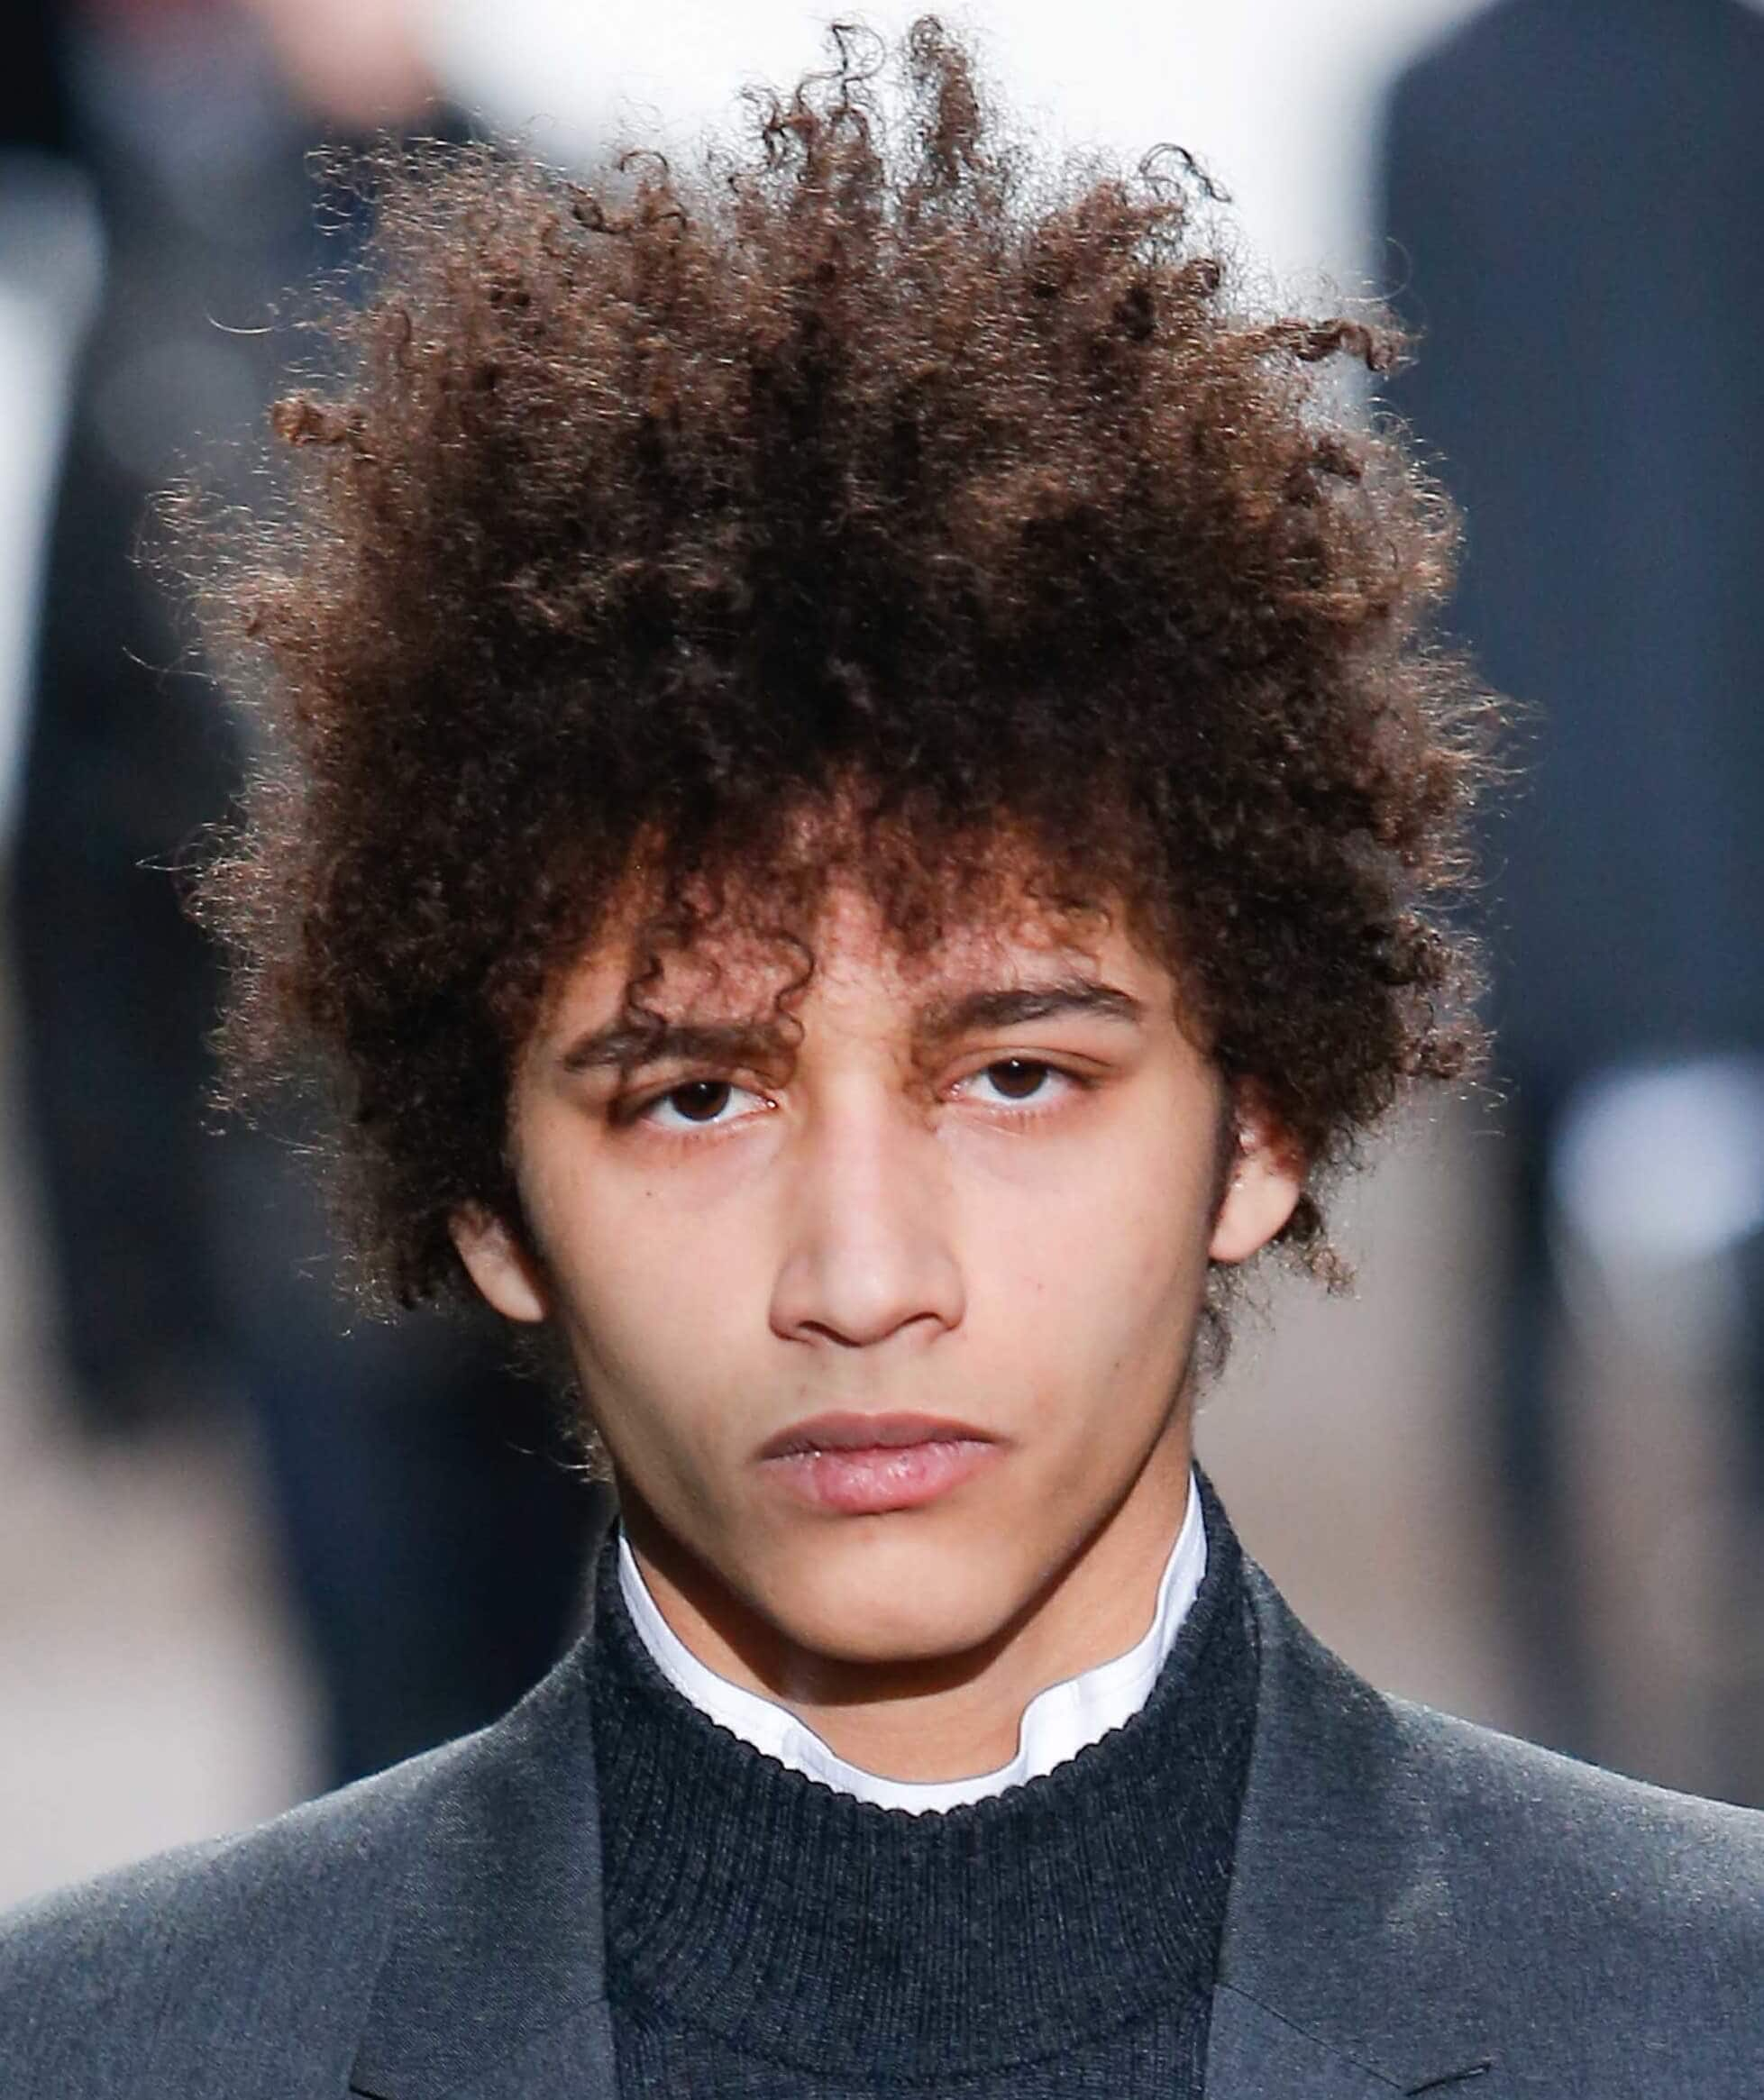 Curly Hair Men Our Fave Styles How To Work Them For Your